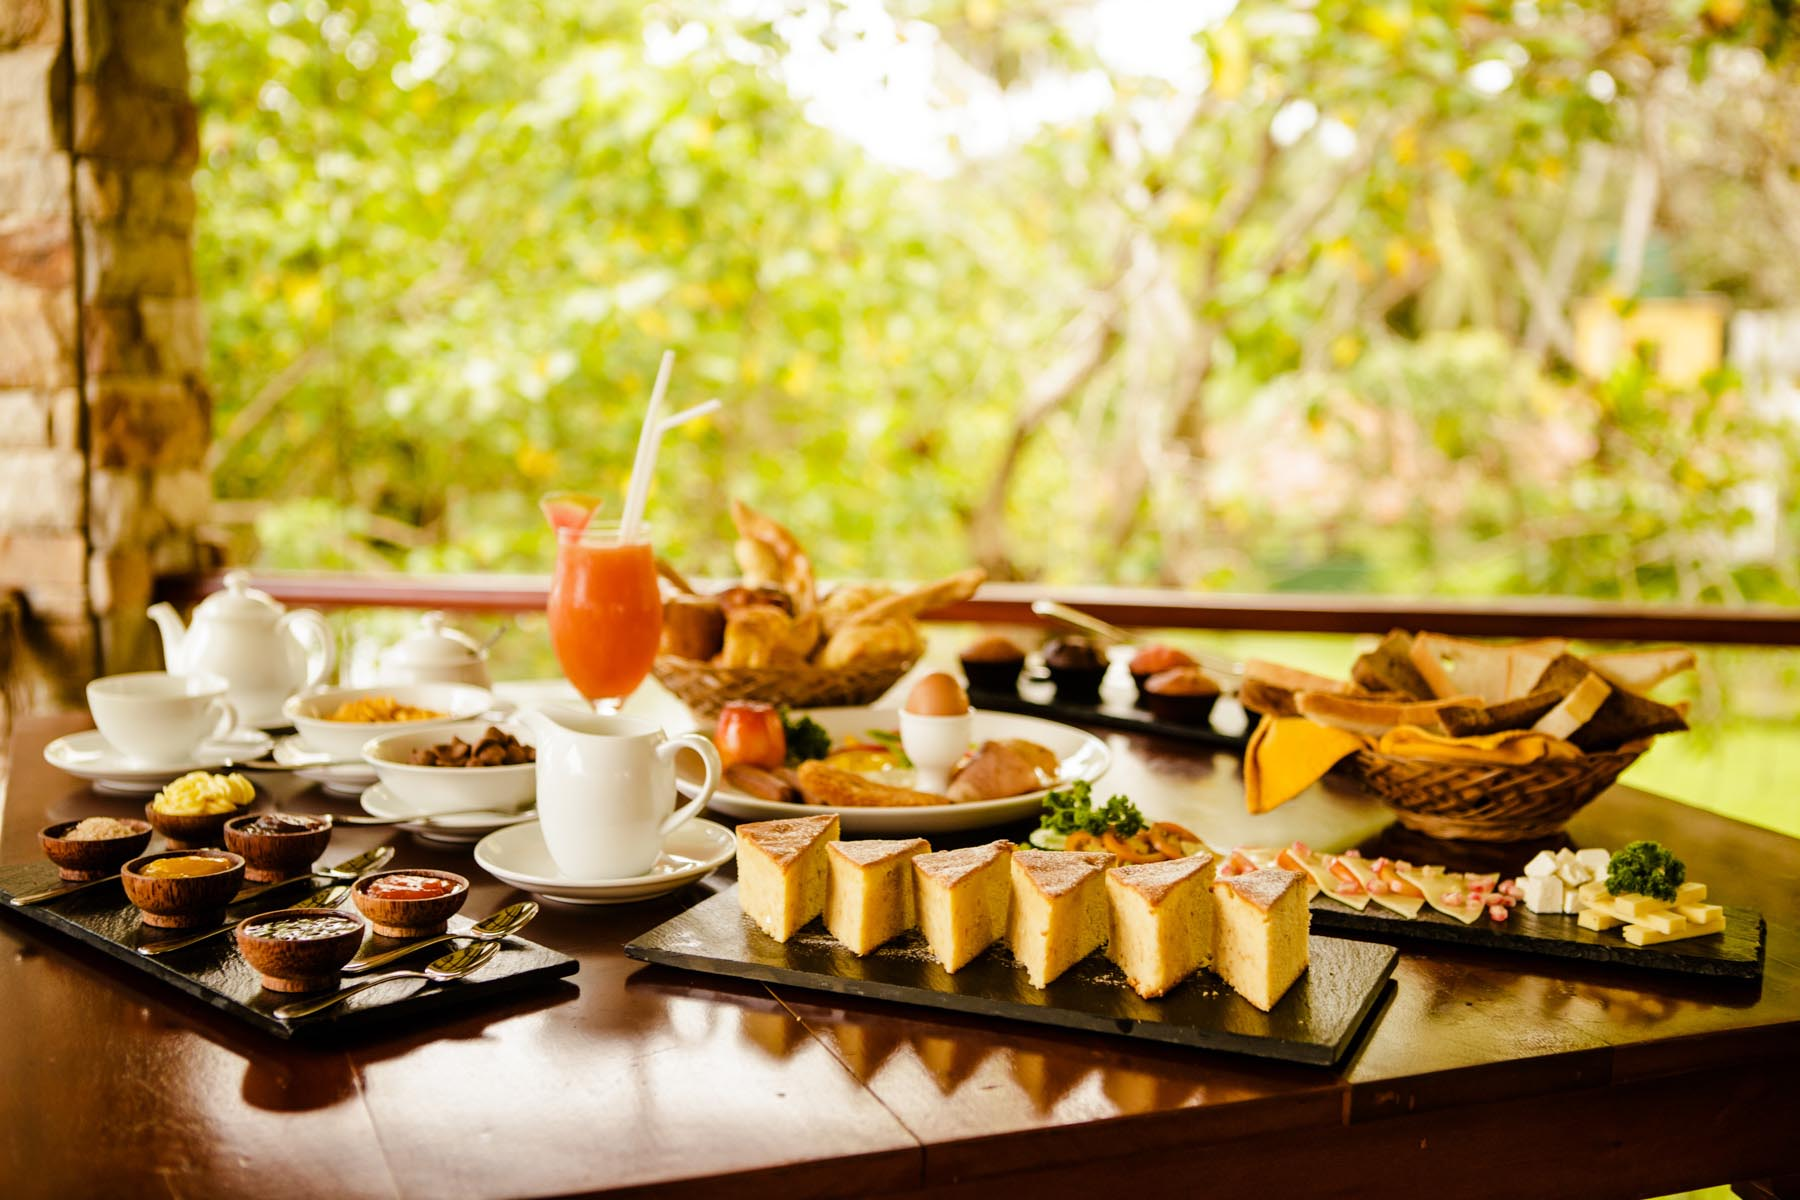 thaulle-resort-sri-lanka-thaulle-cuisine-breakfast-overview